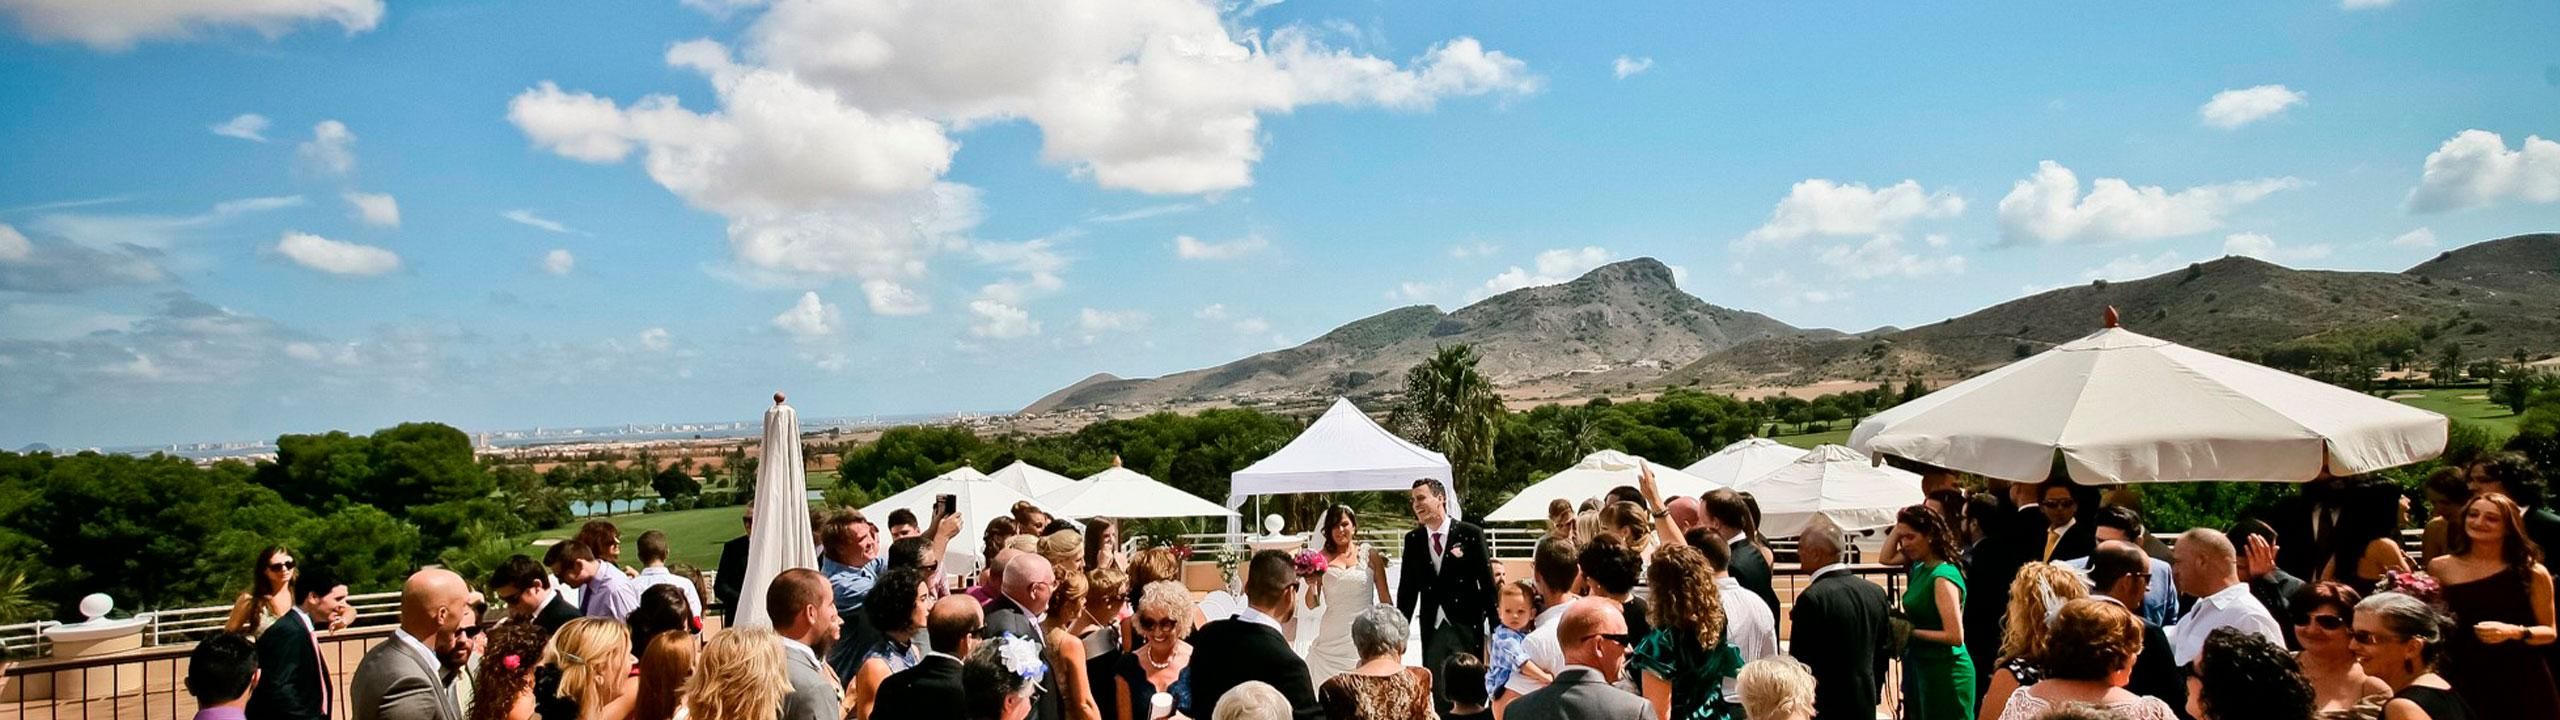 Weddings and Corporate Events la manga club